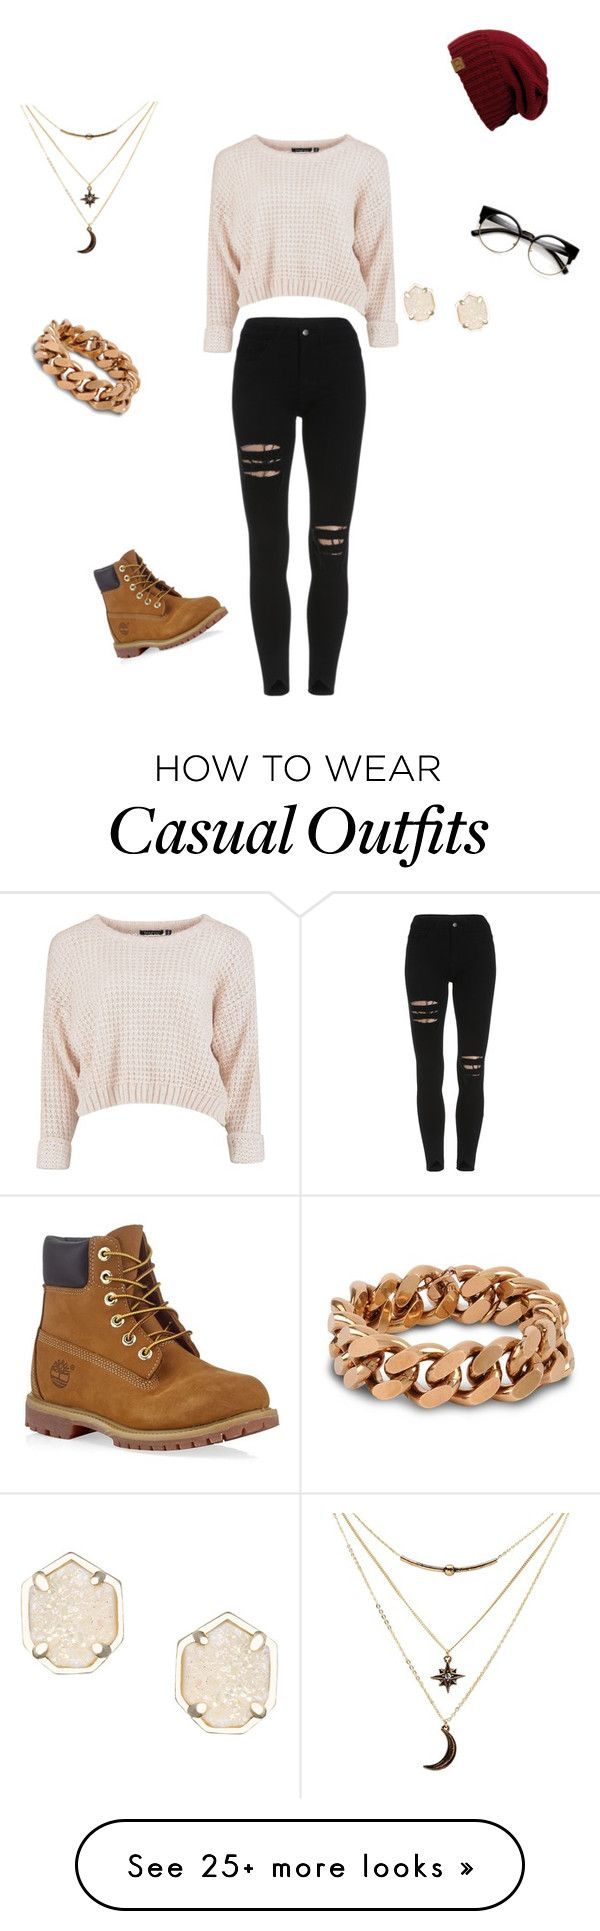 """""""Casual day out"""" by babygirldanii on Polyvore featuring Timberland, Charlotte Russe, STELLA McCARTNEY and Kendra Scott"""